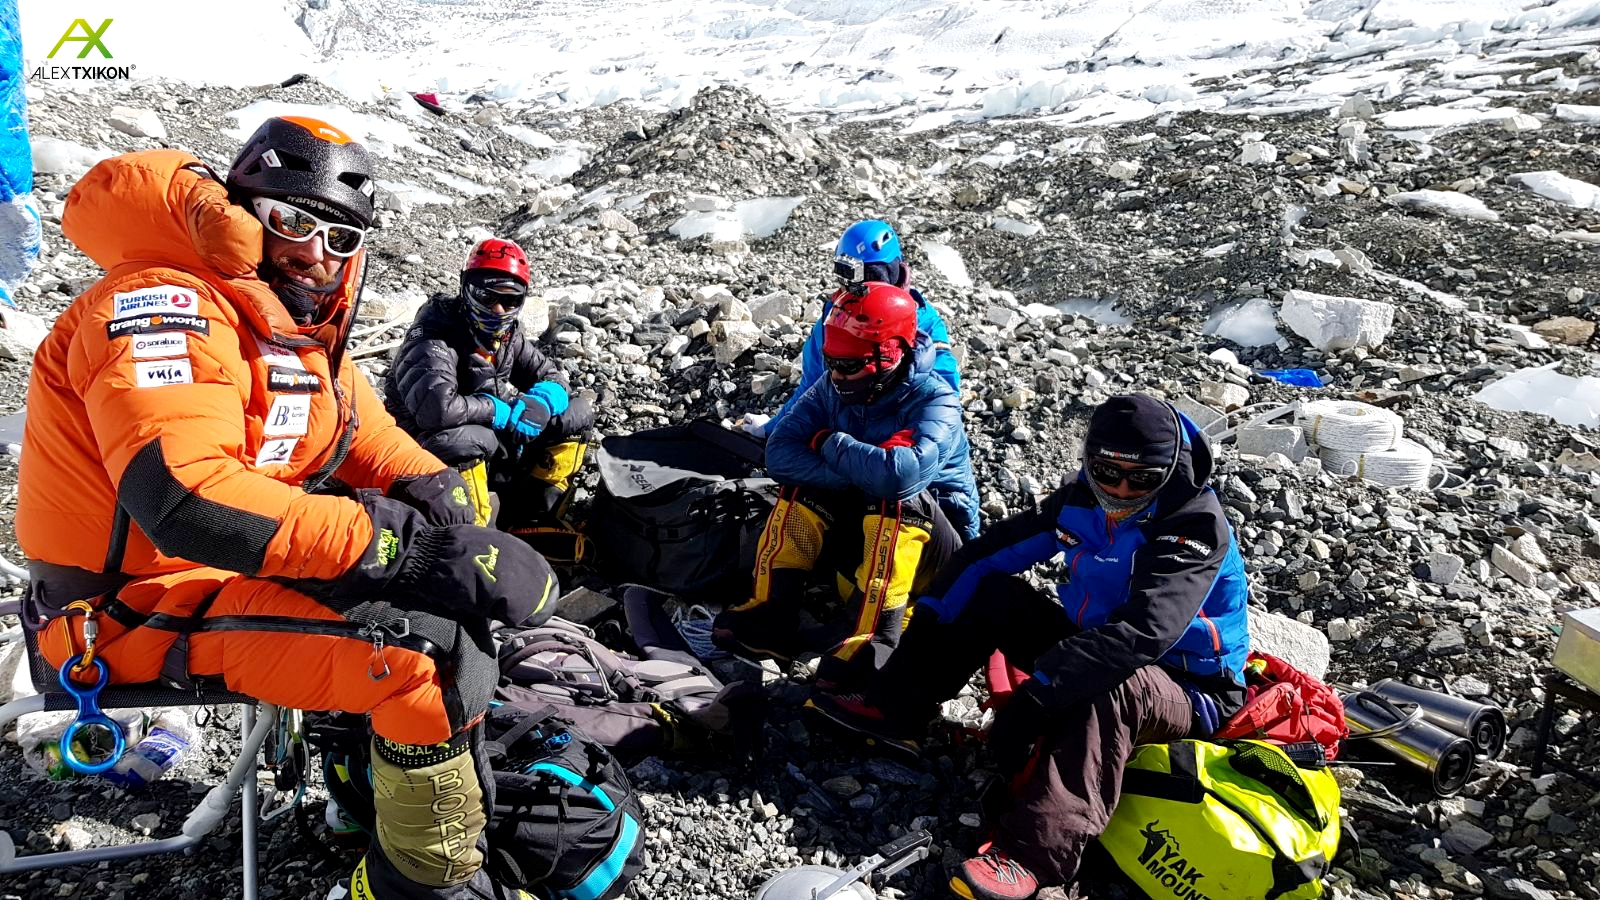 Everest Invernal: La expedición Alex Txikon ya en campo 2 a 6.500m. Video, crónica y fotos.